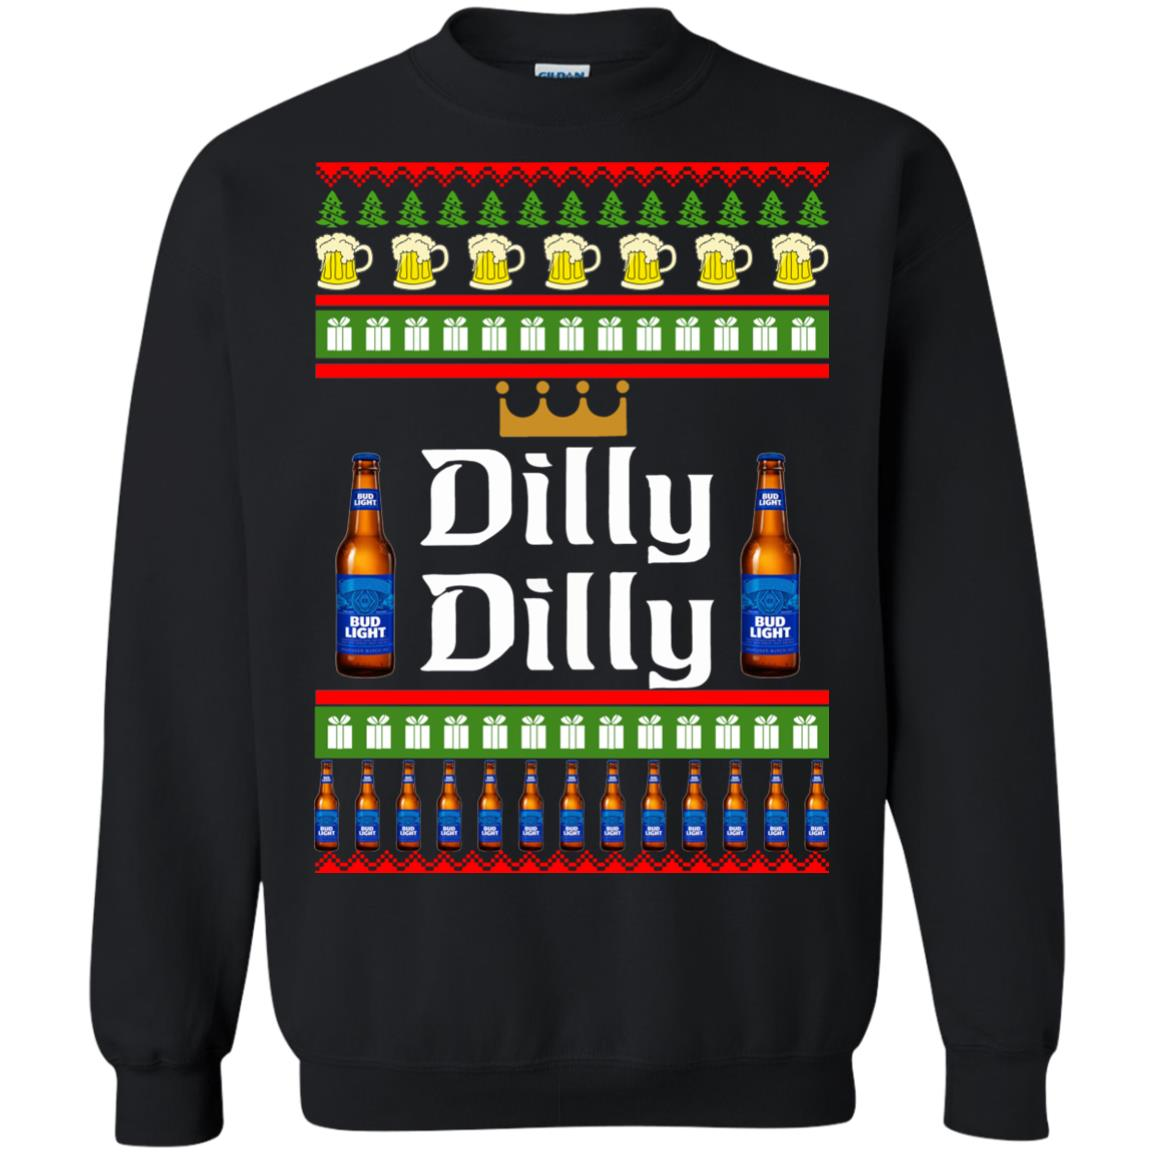 image 4236 - Bud Light: Dilly Dilly Ugly Sweater, Christmas Sweatshirts